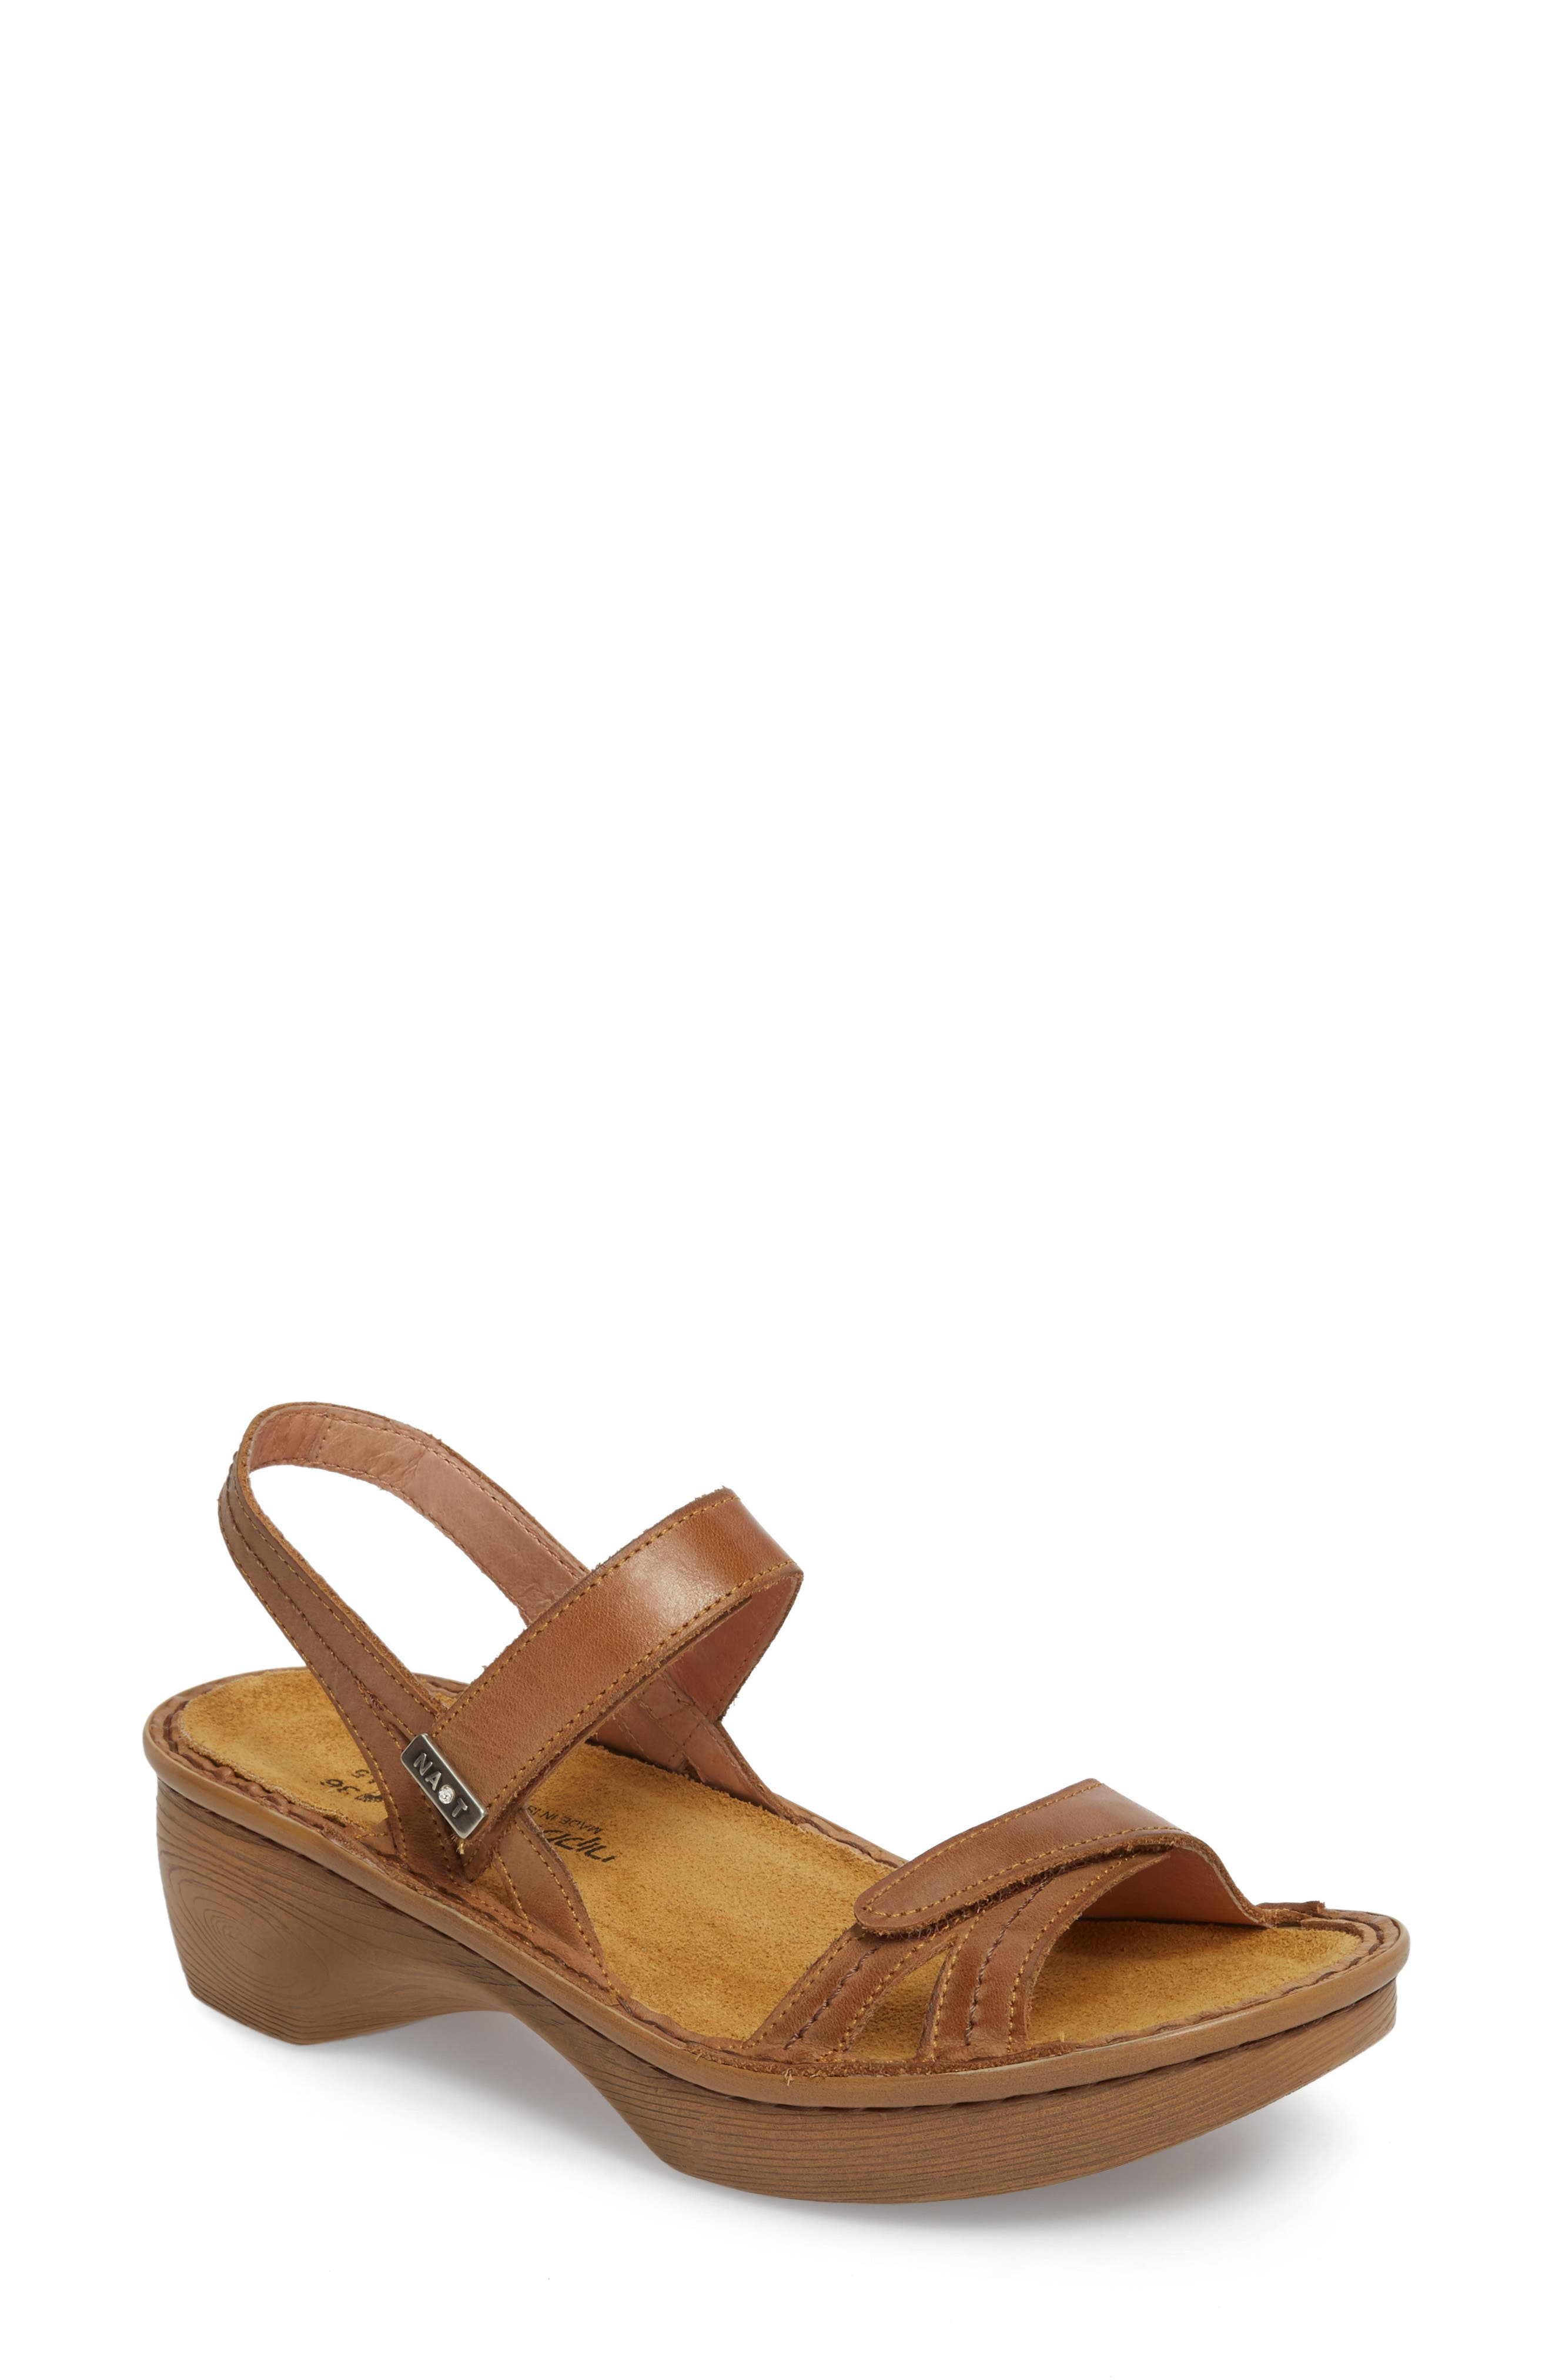 NAOT, 'Brussels' Sandal, Main thumbnail 1, color, VINTAGE CAMEL LEATHER